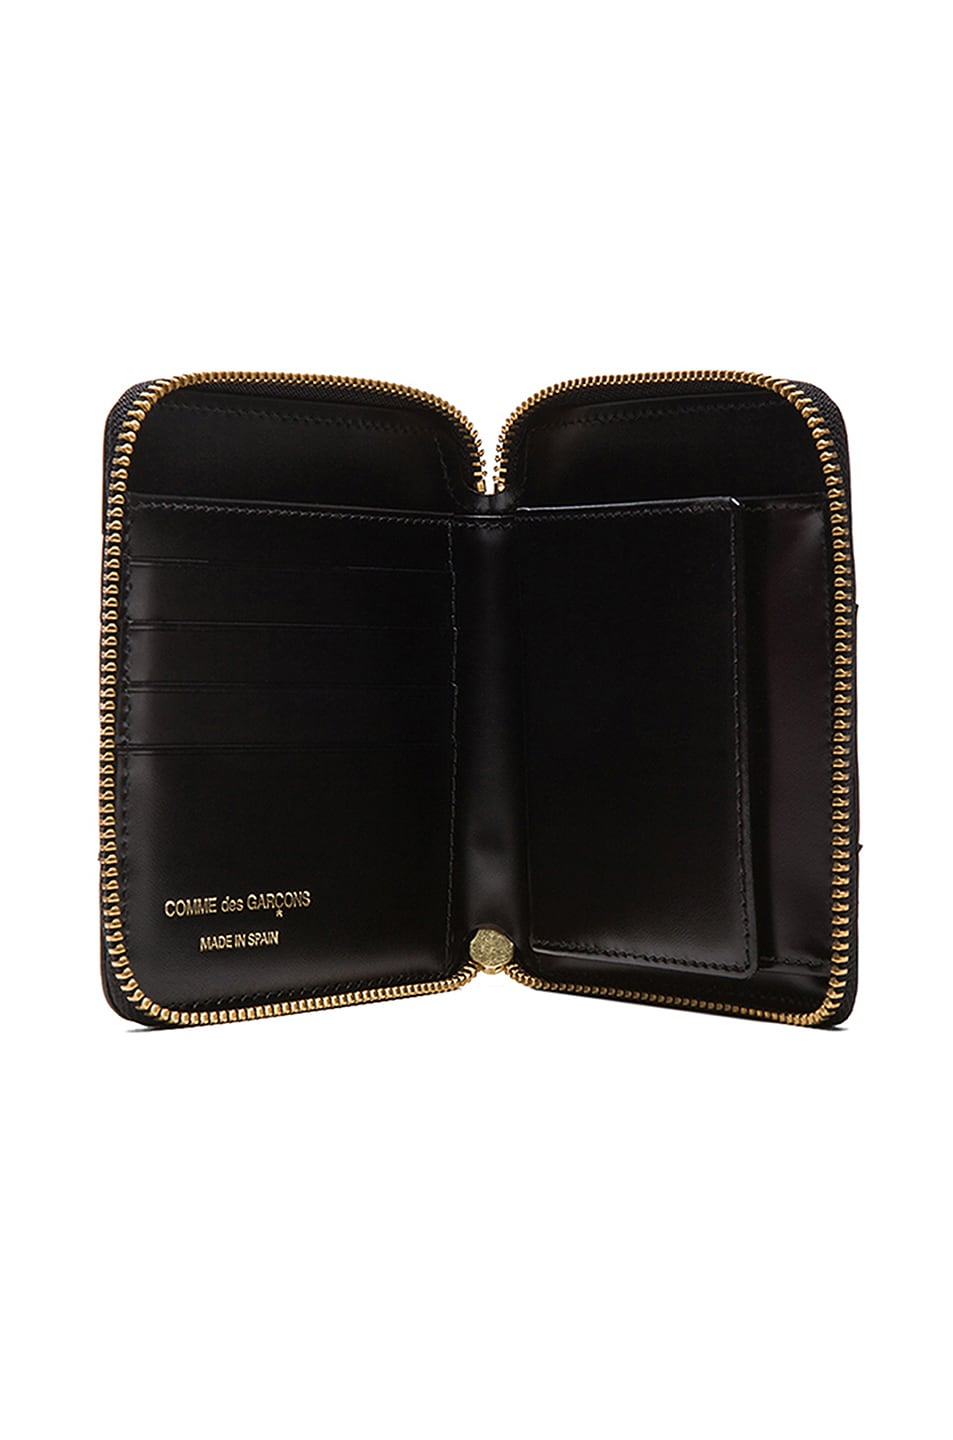 Image 4 of Comme Des Garcons Raised Spike Zip Fold Wallet in Black